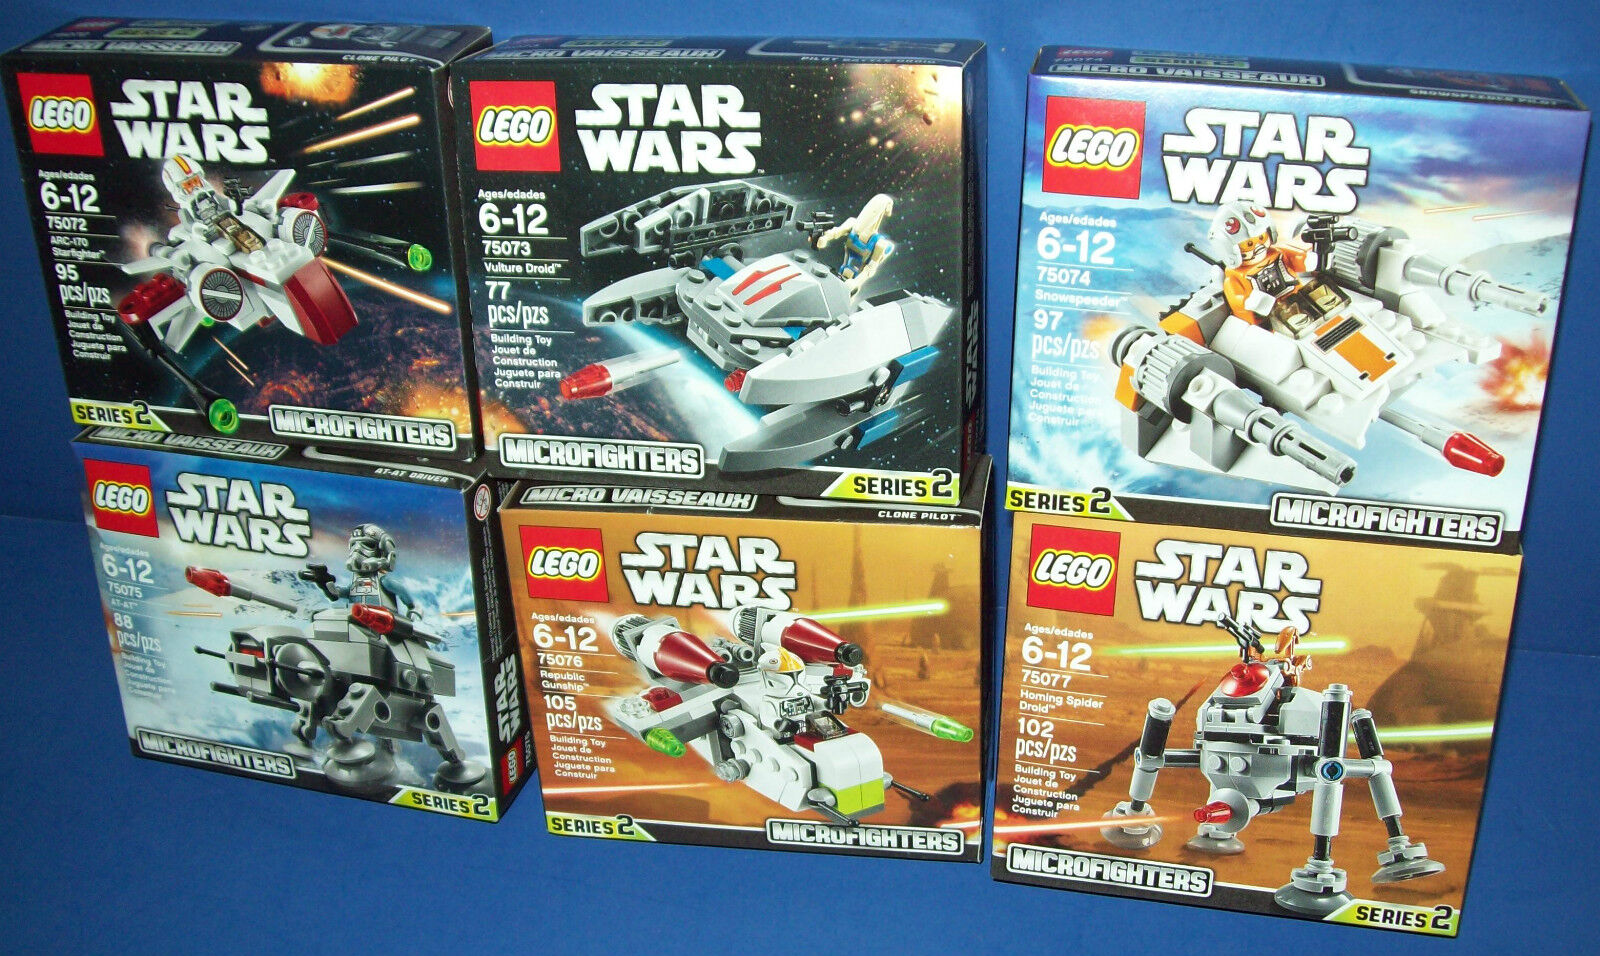 LEGO Star Wars LOT 75072 75073 75074 75075 75076 75077 6 MICROFIGHTERS SERIES 2